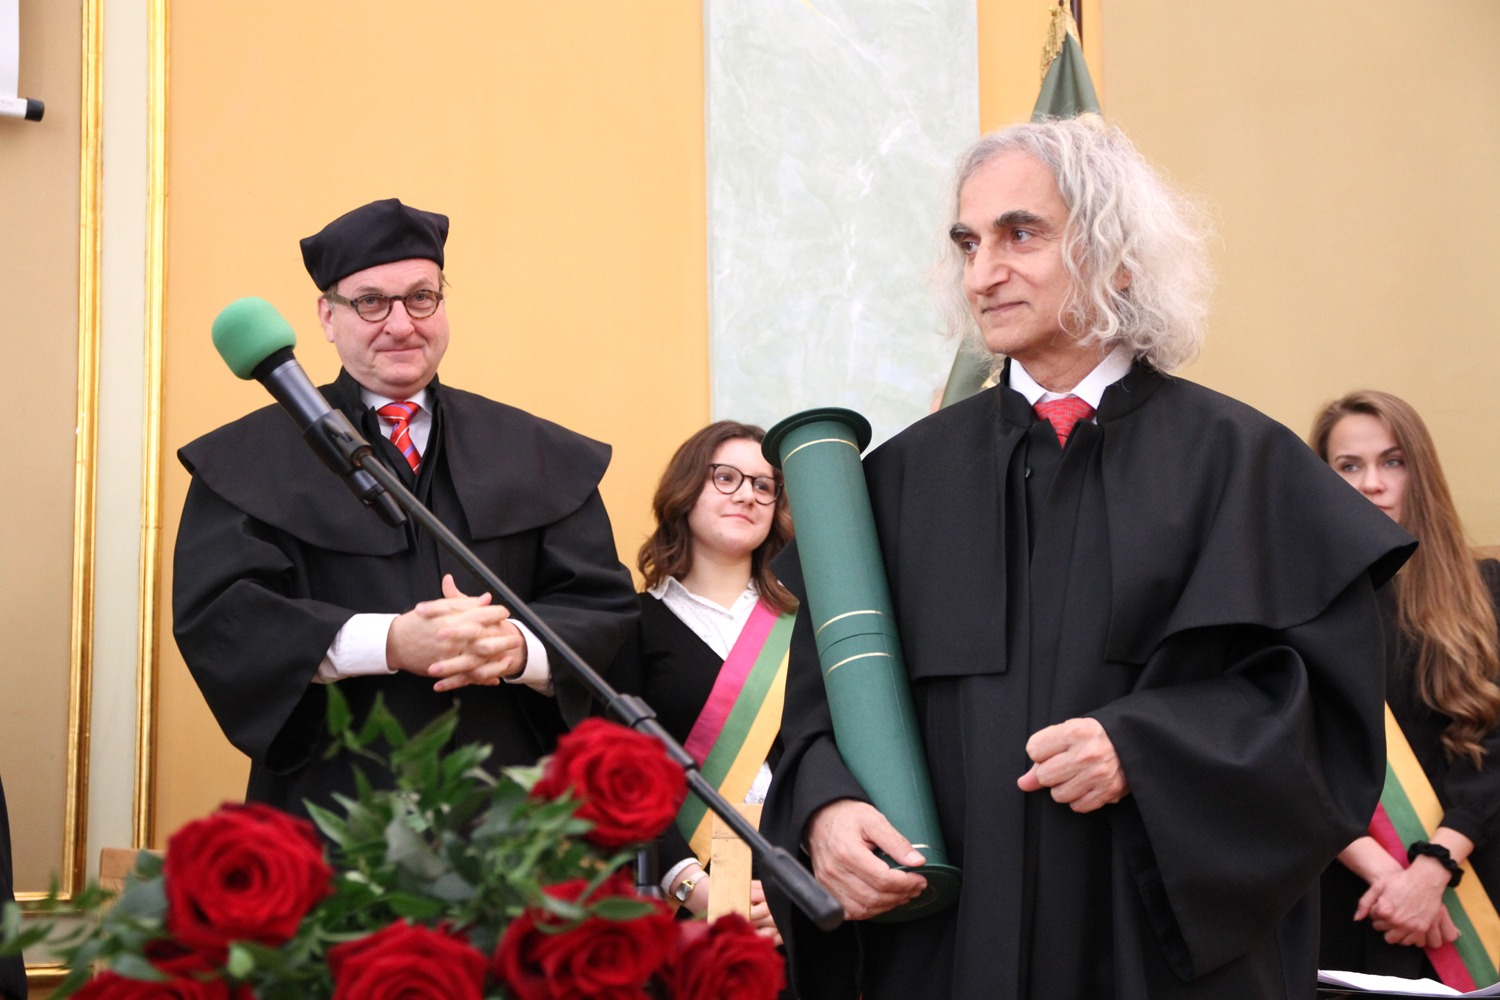 The title of doctor honoris causa for prof. Oded Galor